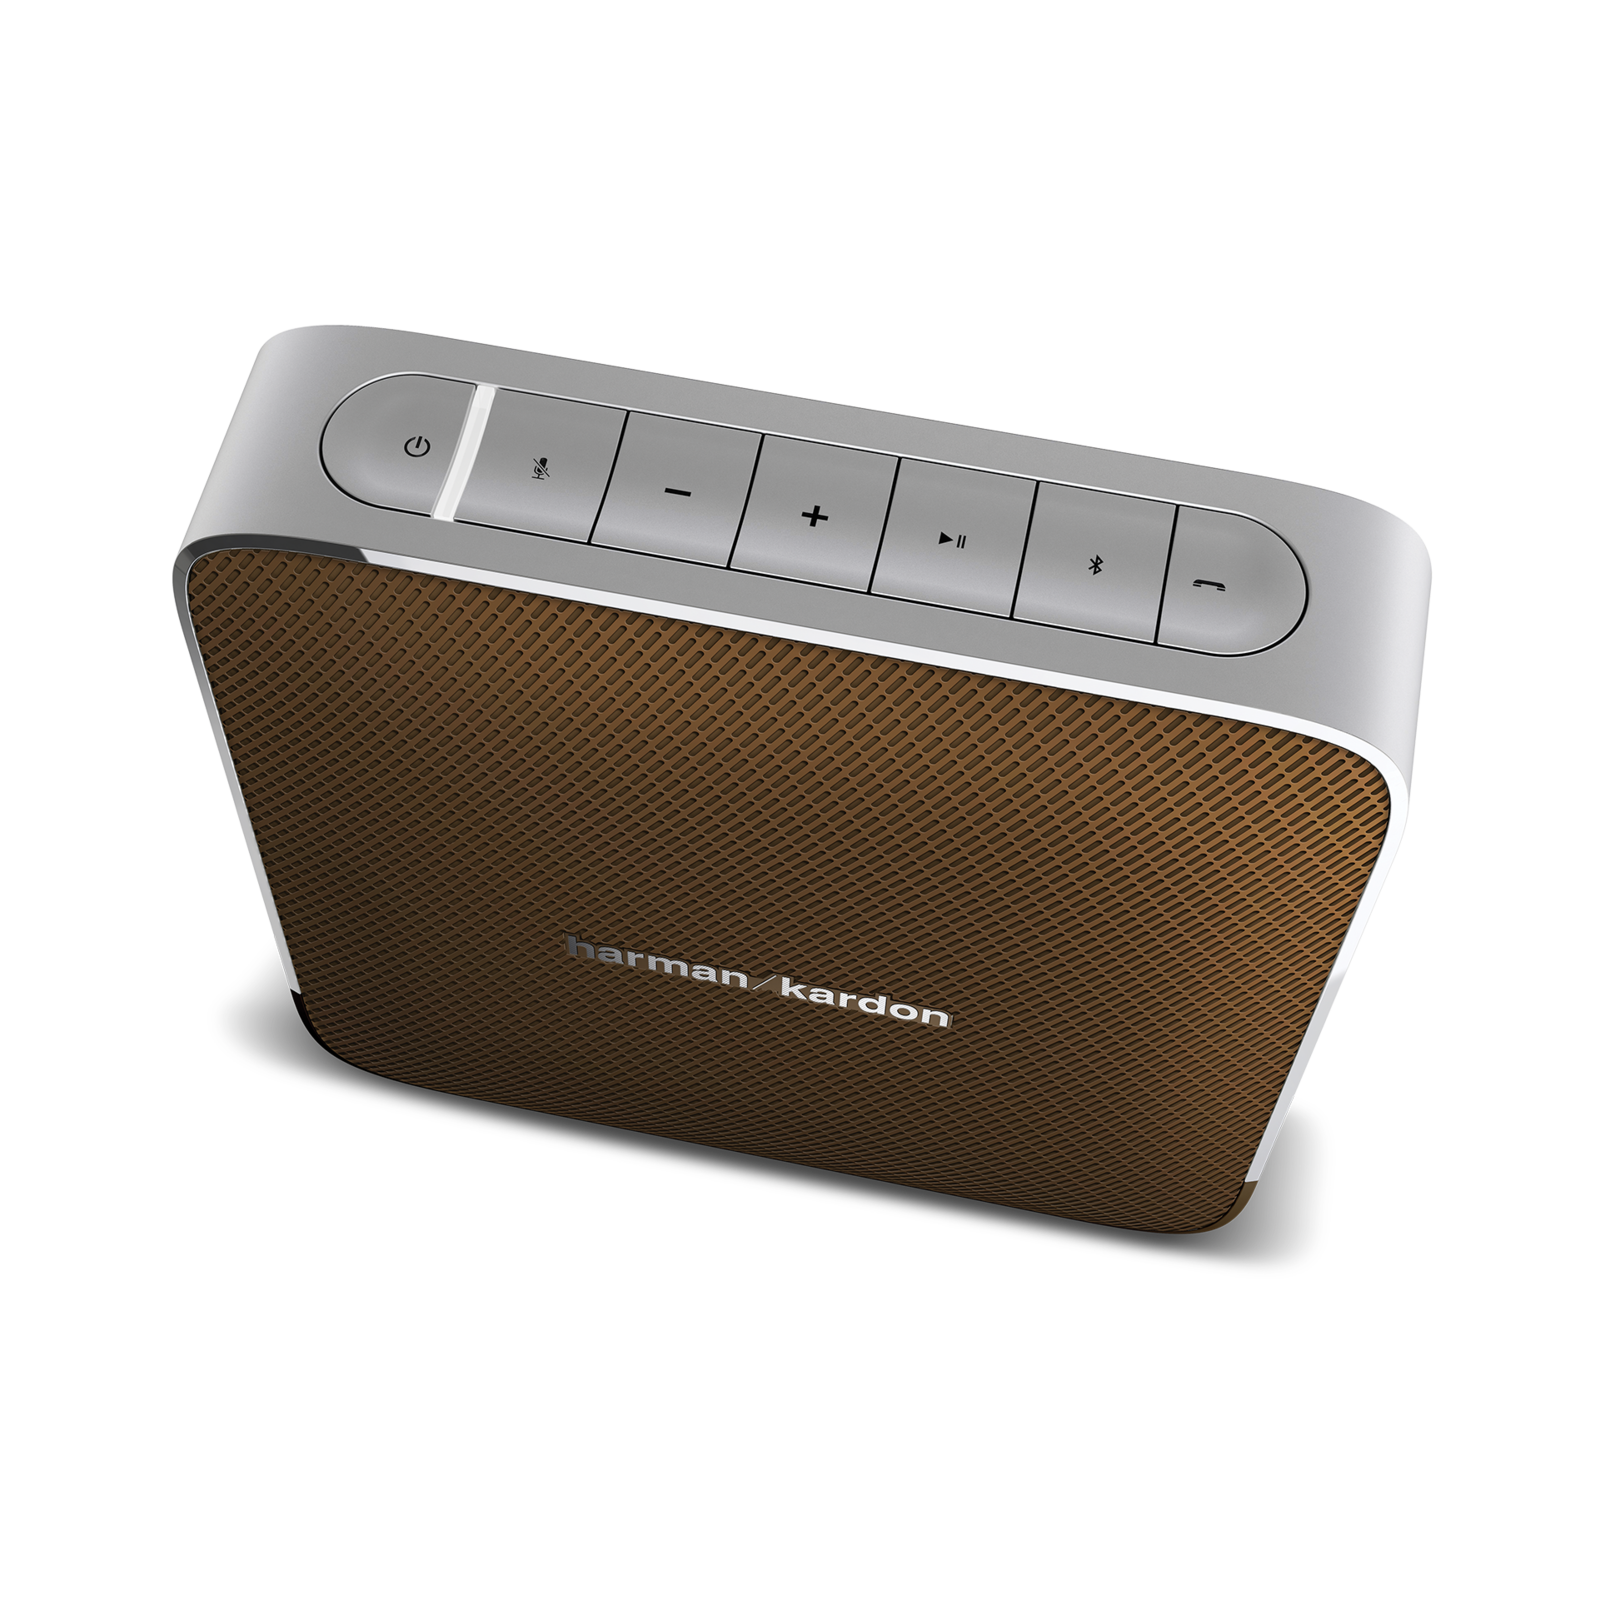 Esquire - Brown - Portable, wireless speaker and conferencing system - Detailshot 1